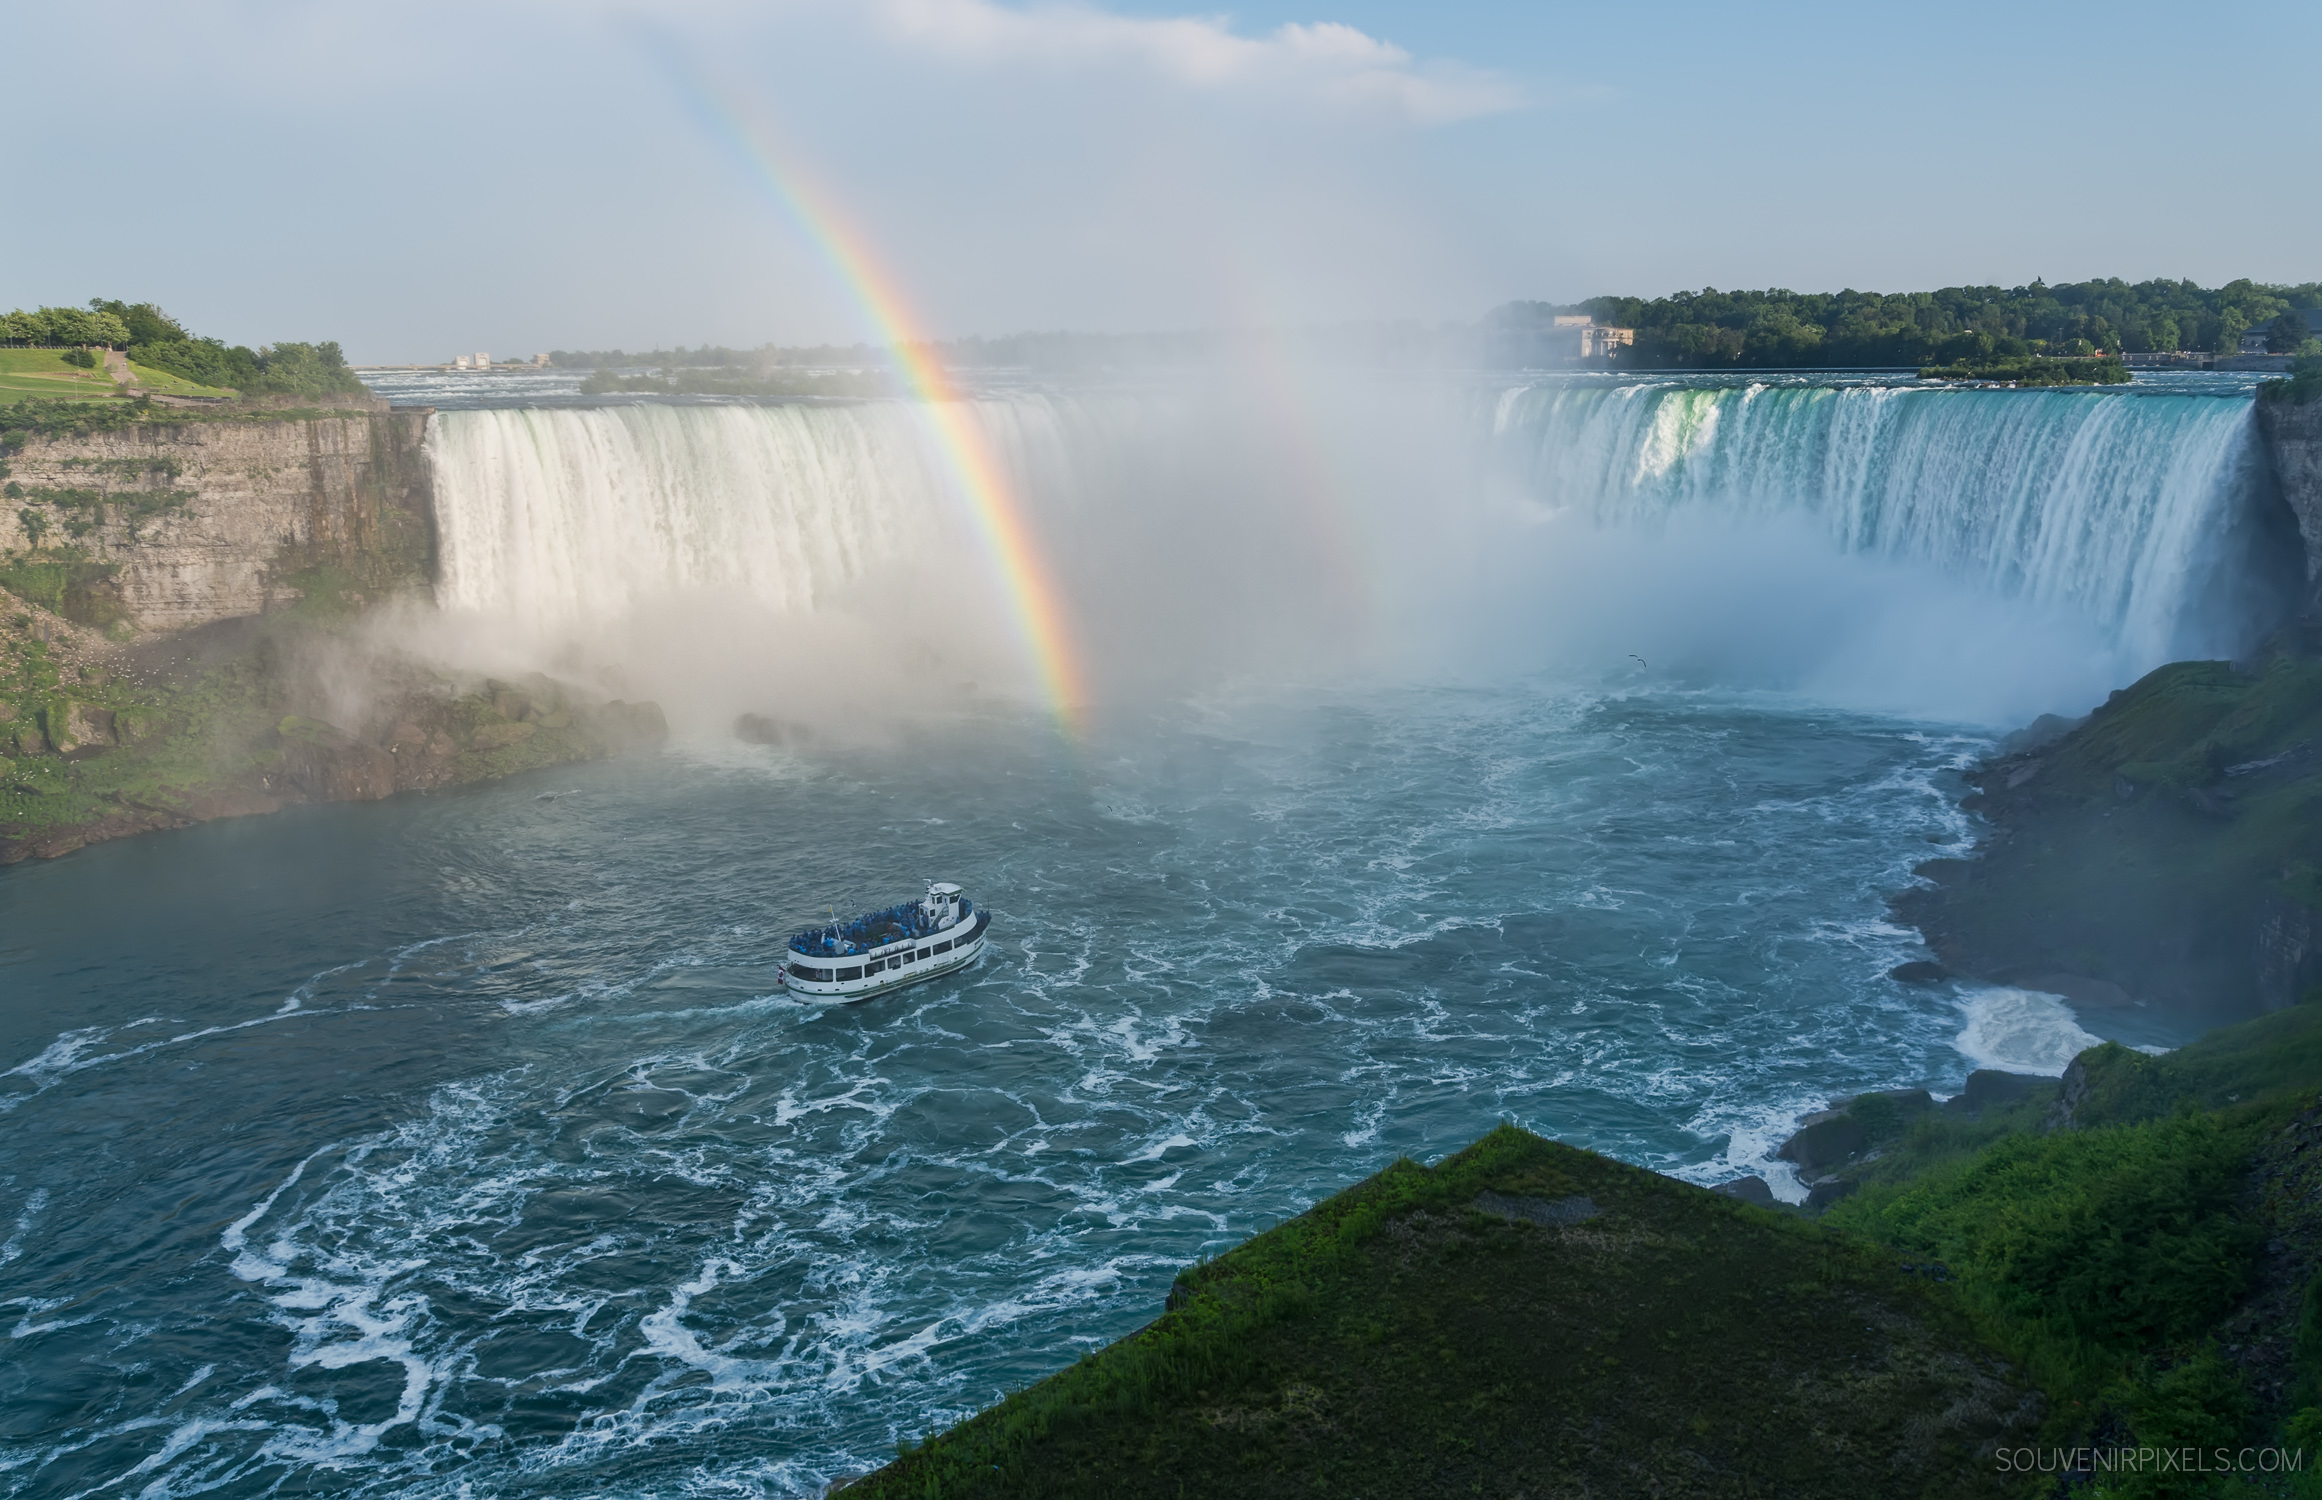 free dating niagara falls ontario Every evening beginning at dusk, niagara falls is transformed into an colours for many registered charities marking a significant date in support of their cause.